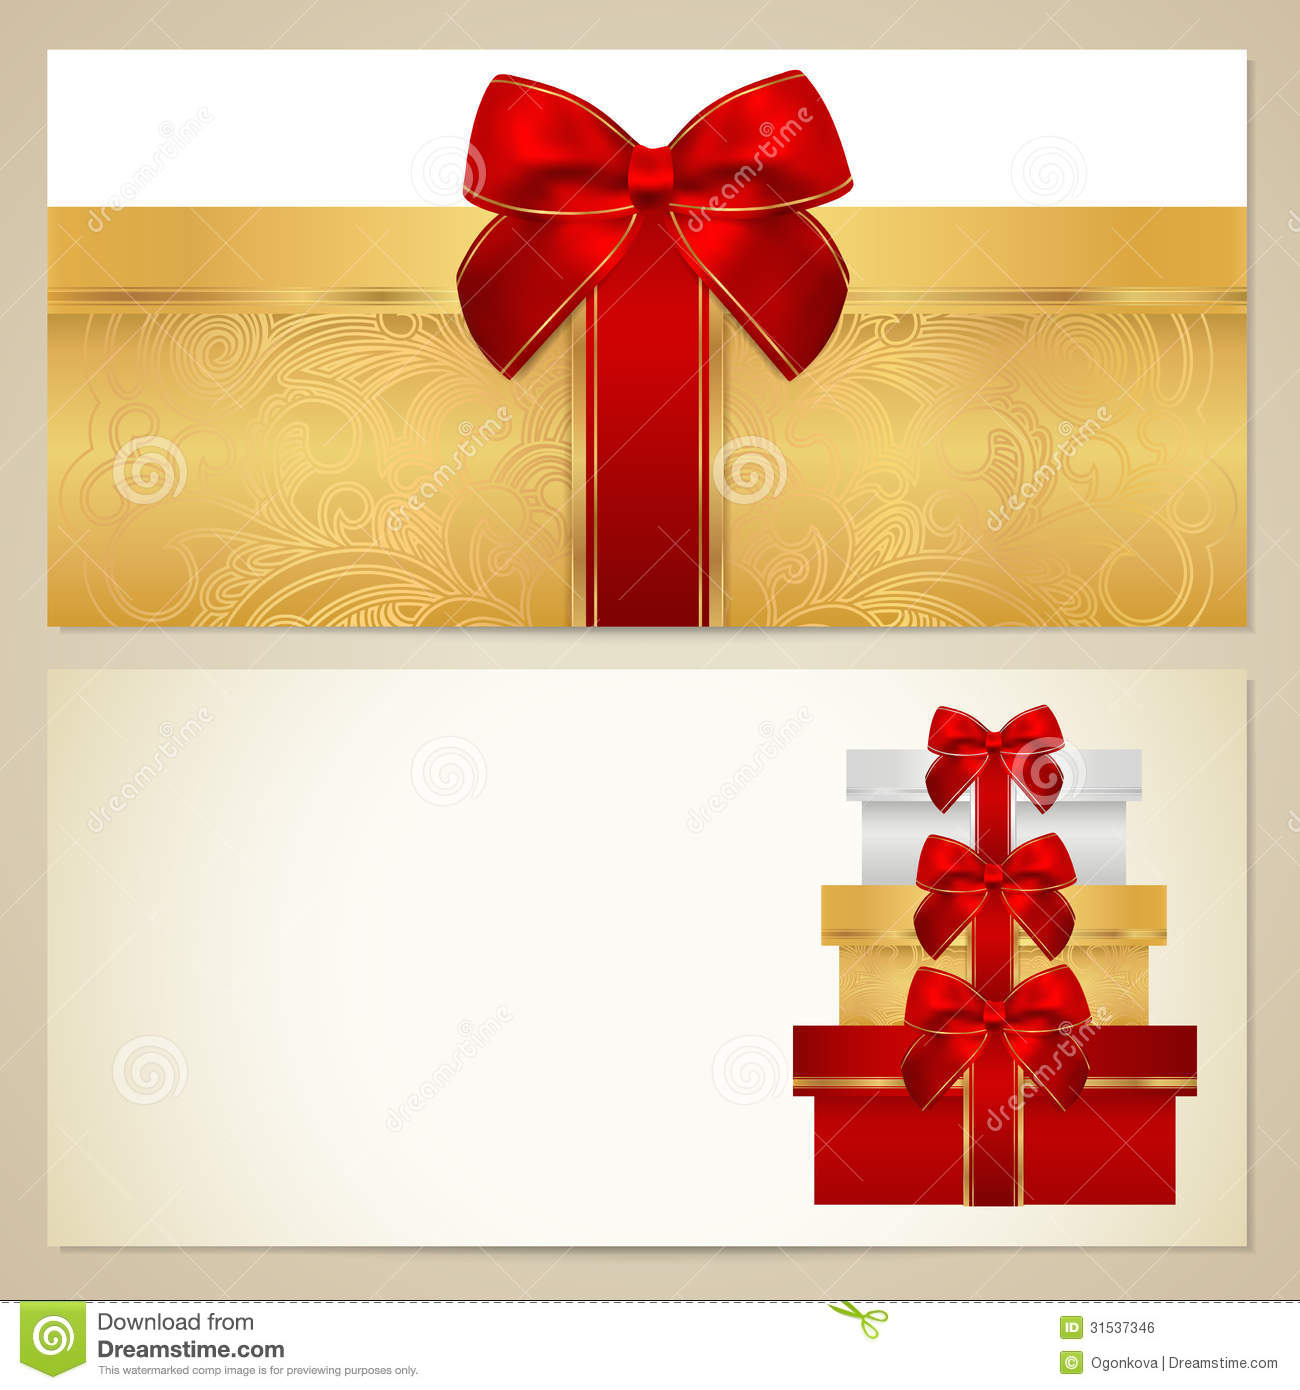 Voucher (Gift Certificate, Coupon) Template. Boxes Royalty Free Stock Image - Image: 31537346